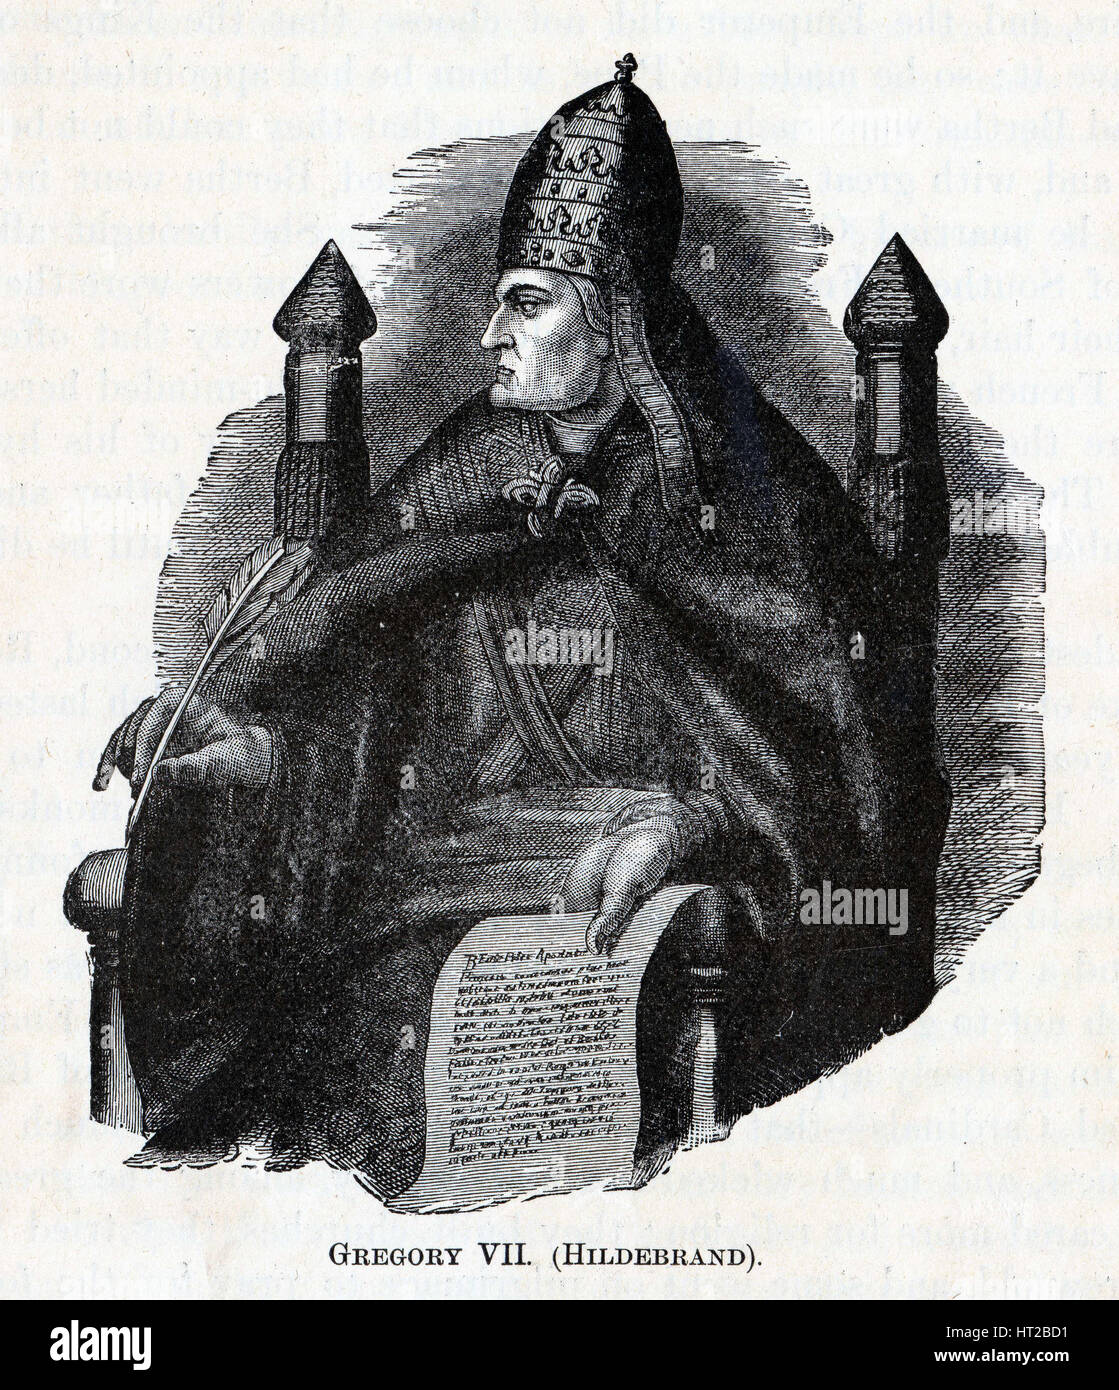 Gregory VII (Hildebrand), 1882. Artist: Anonymous - Stock Image